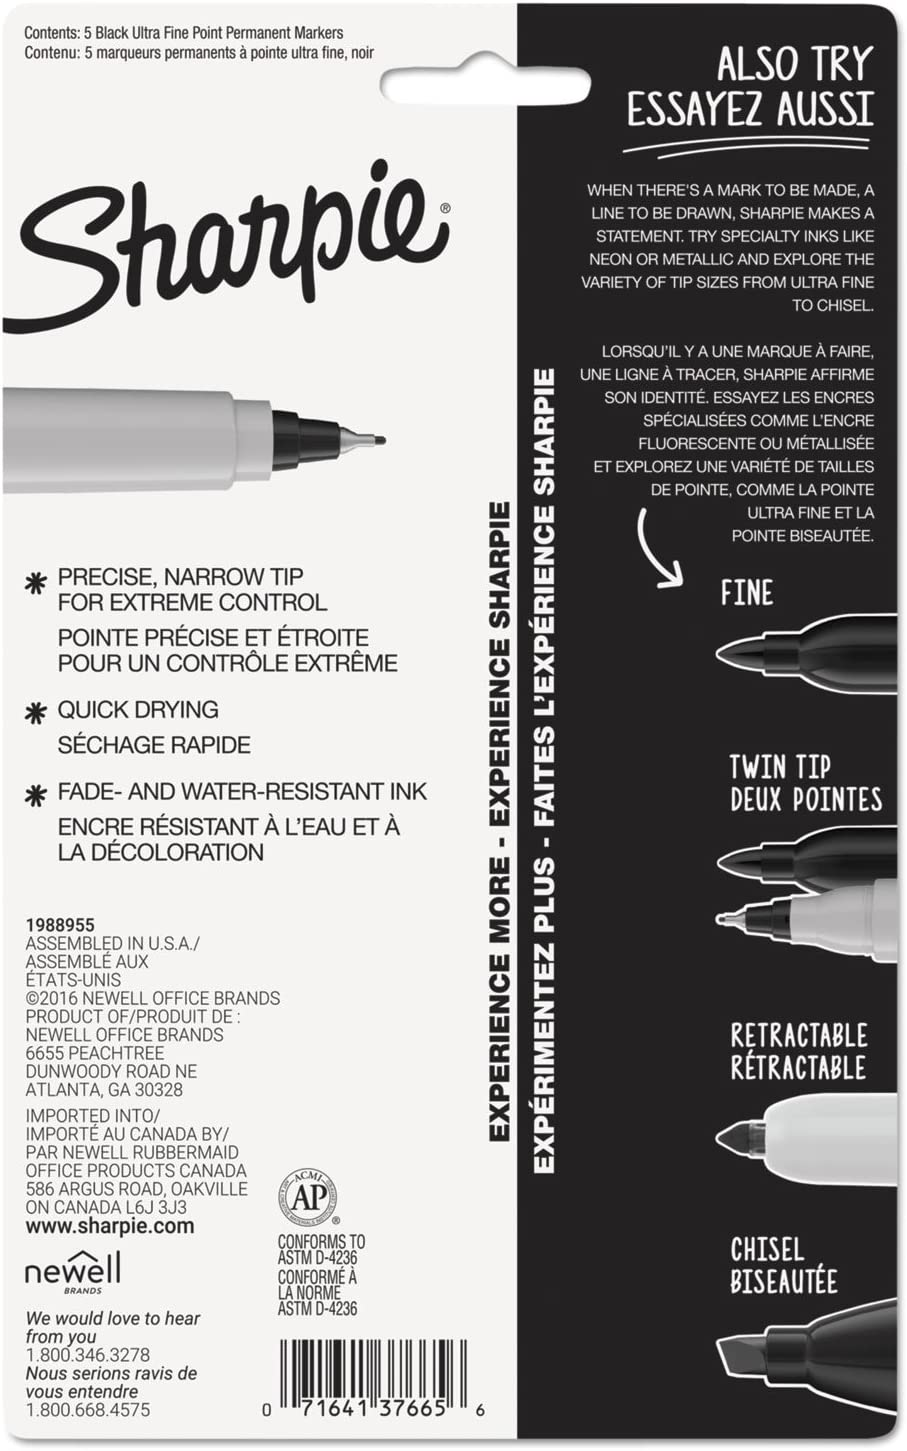 Sharpie Permanent Markers Ultra-Fine Point Dries Quickly And Resists Fading